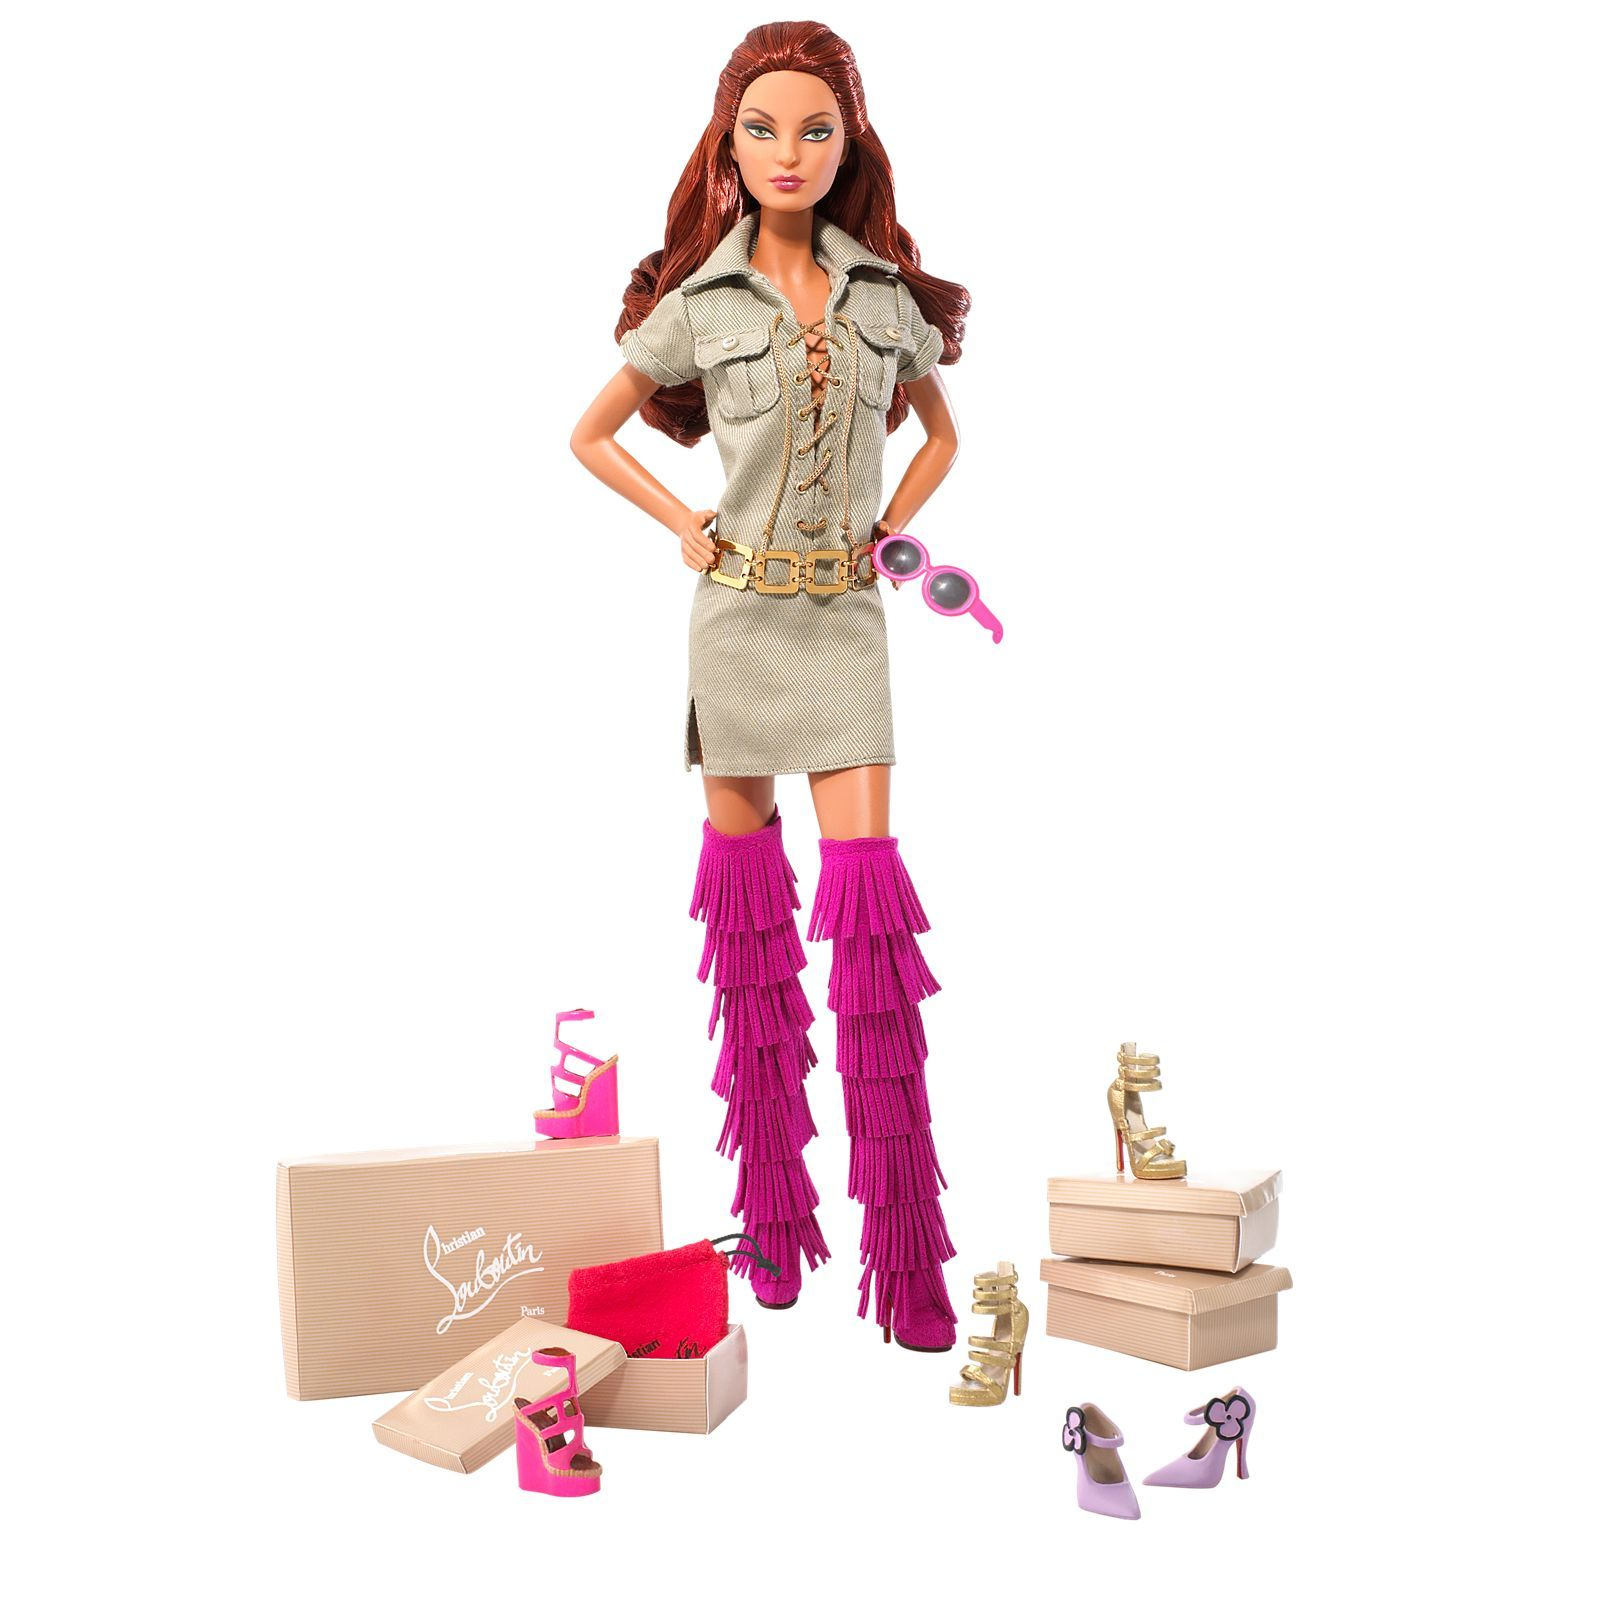 Looking for the dolly forever barbie doll by christian louboutin looking for the dolly forever barbie doll by christian louboutin immerse yourself in barbie history solutioingenieria Images